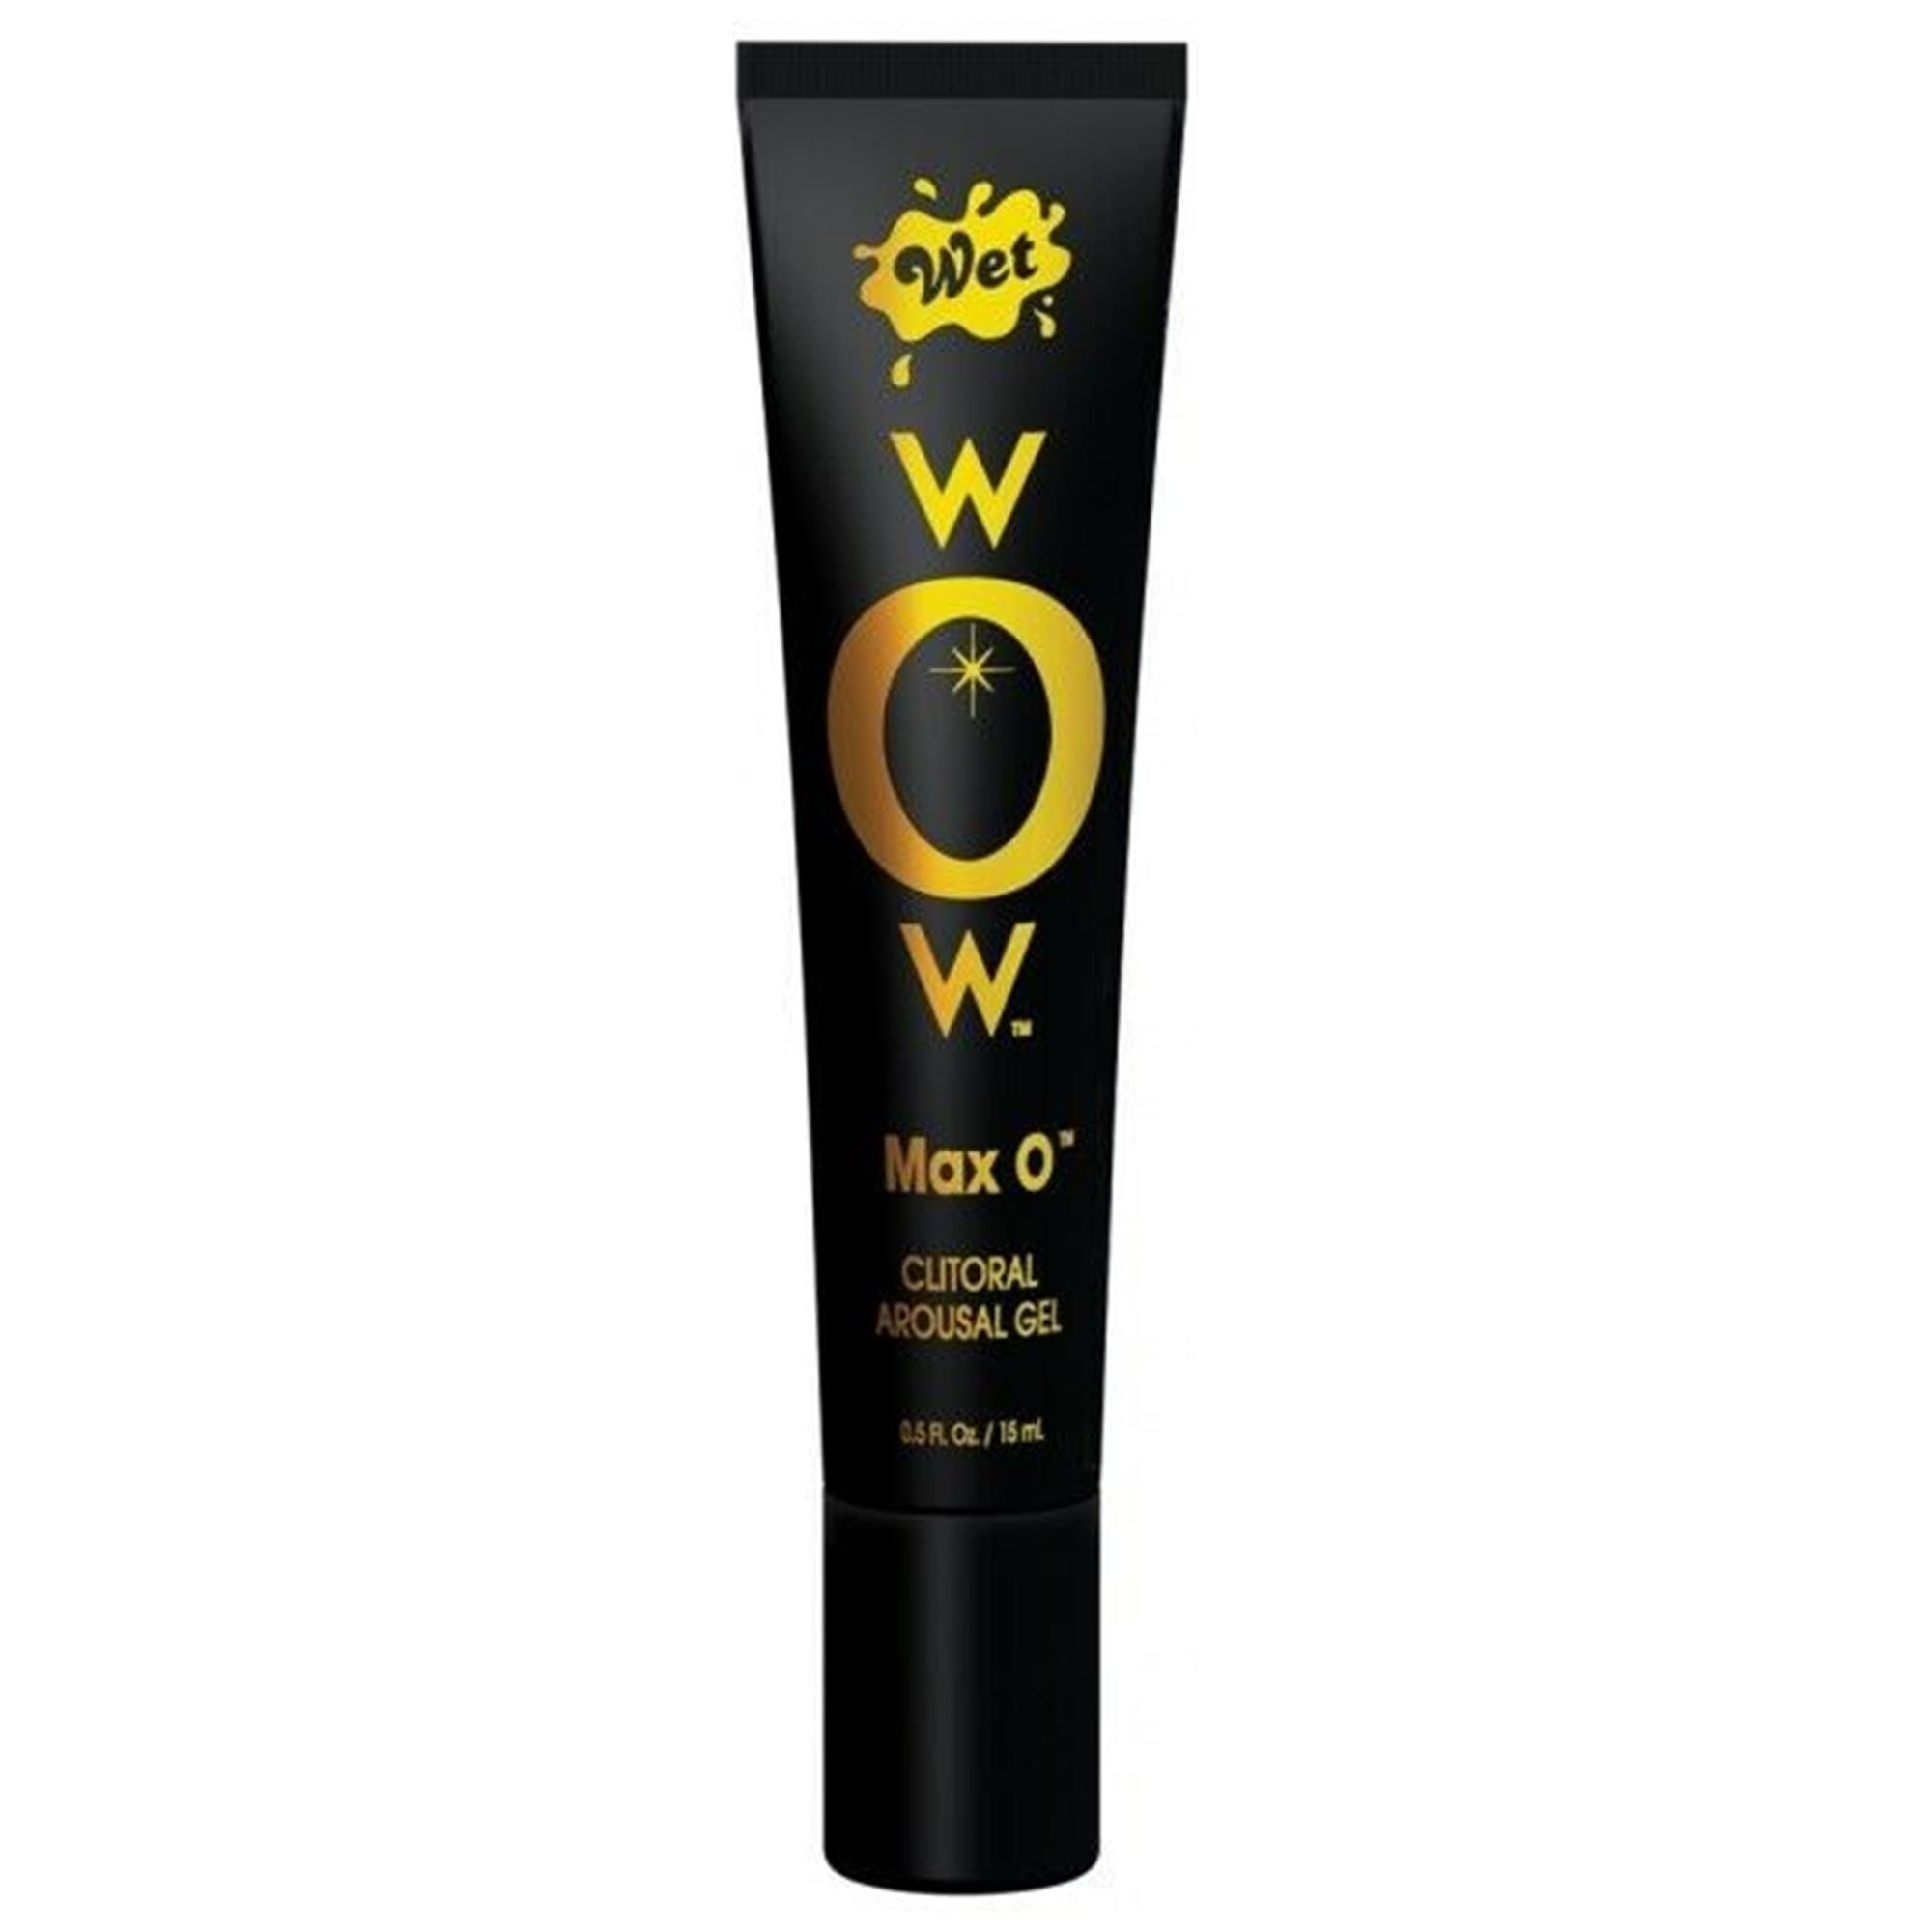 Wet wOw Max O Clitoral Arousal Gel 15m